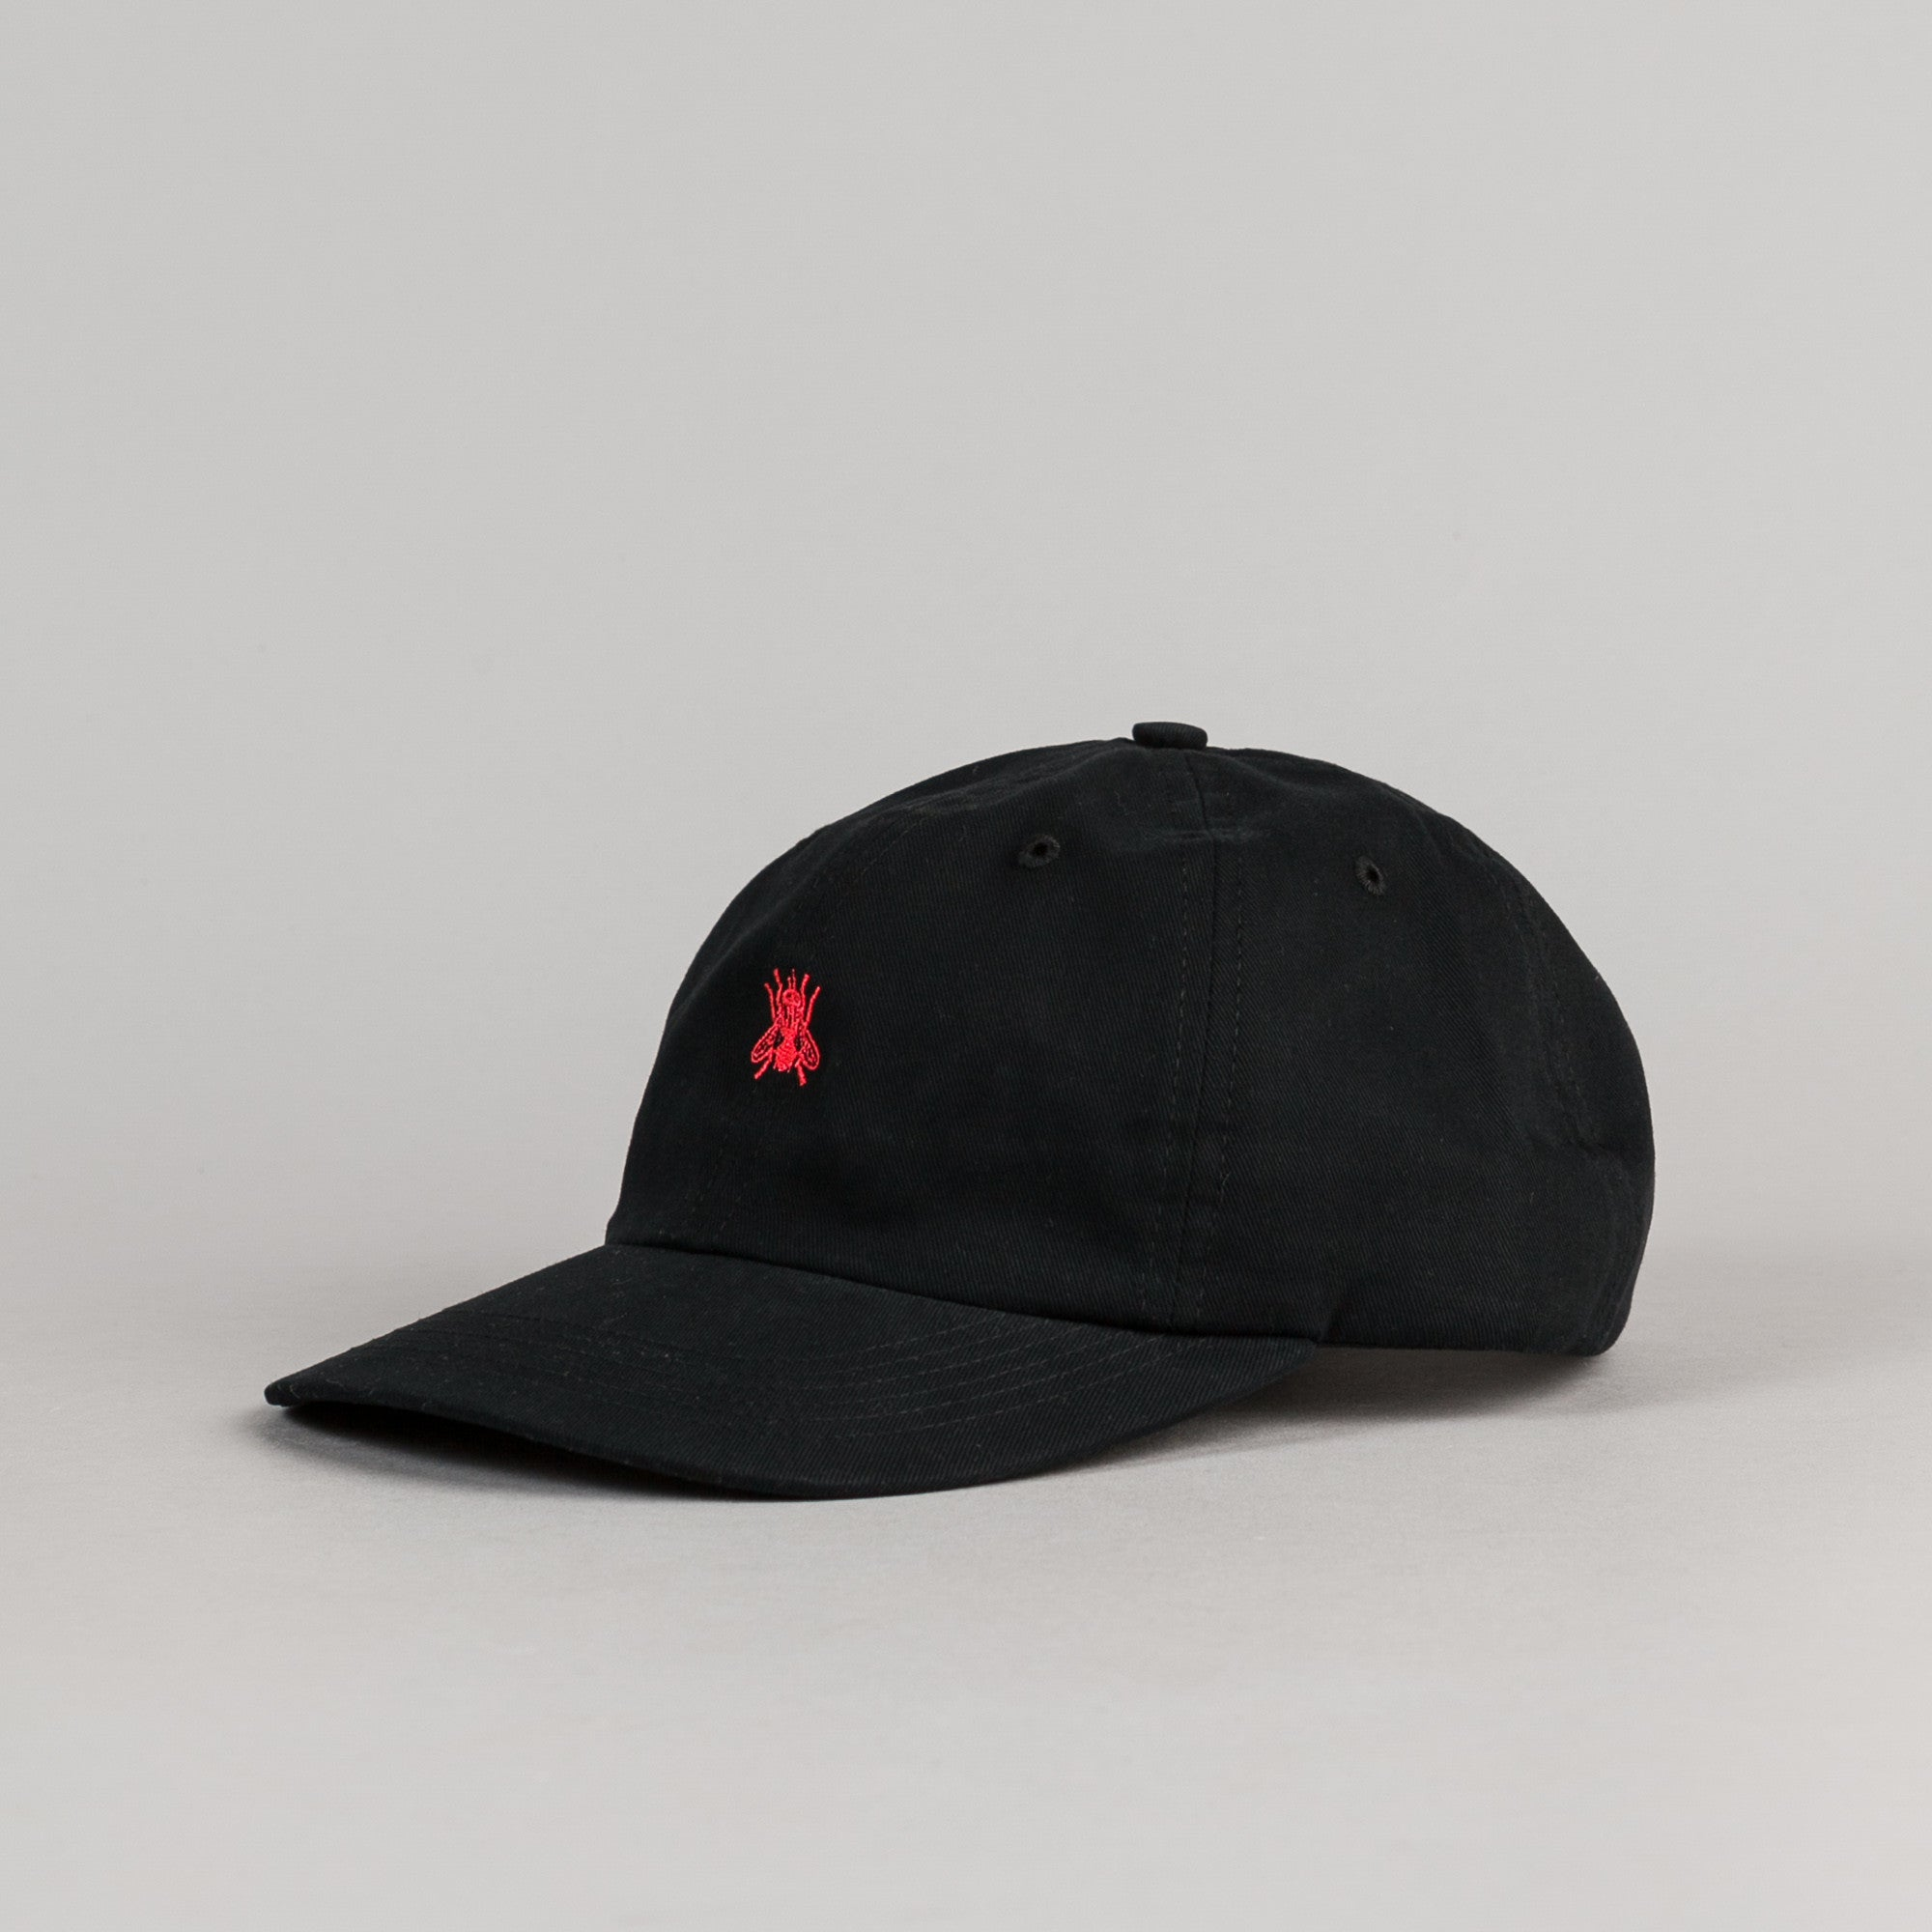 Butter Goods Fly 6 Panel Cap - Black